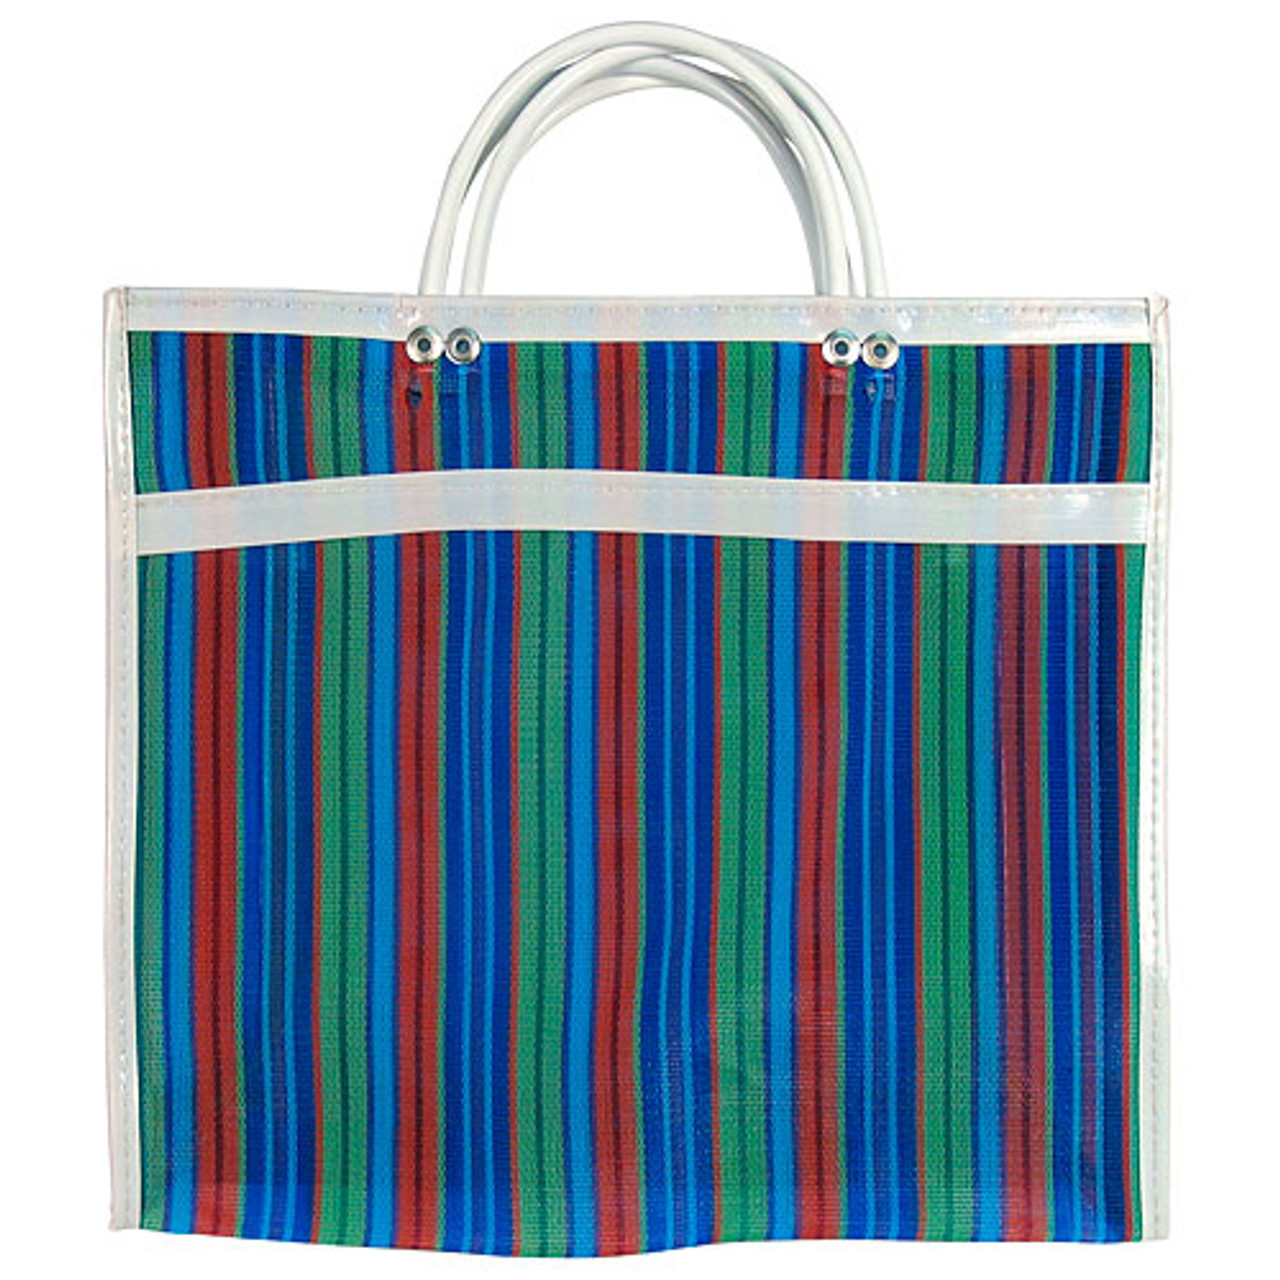 64731f825bed Large Mexican Market Tote Bag Color Patterns Assortment 20